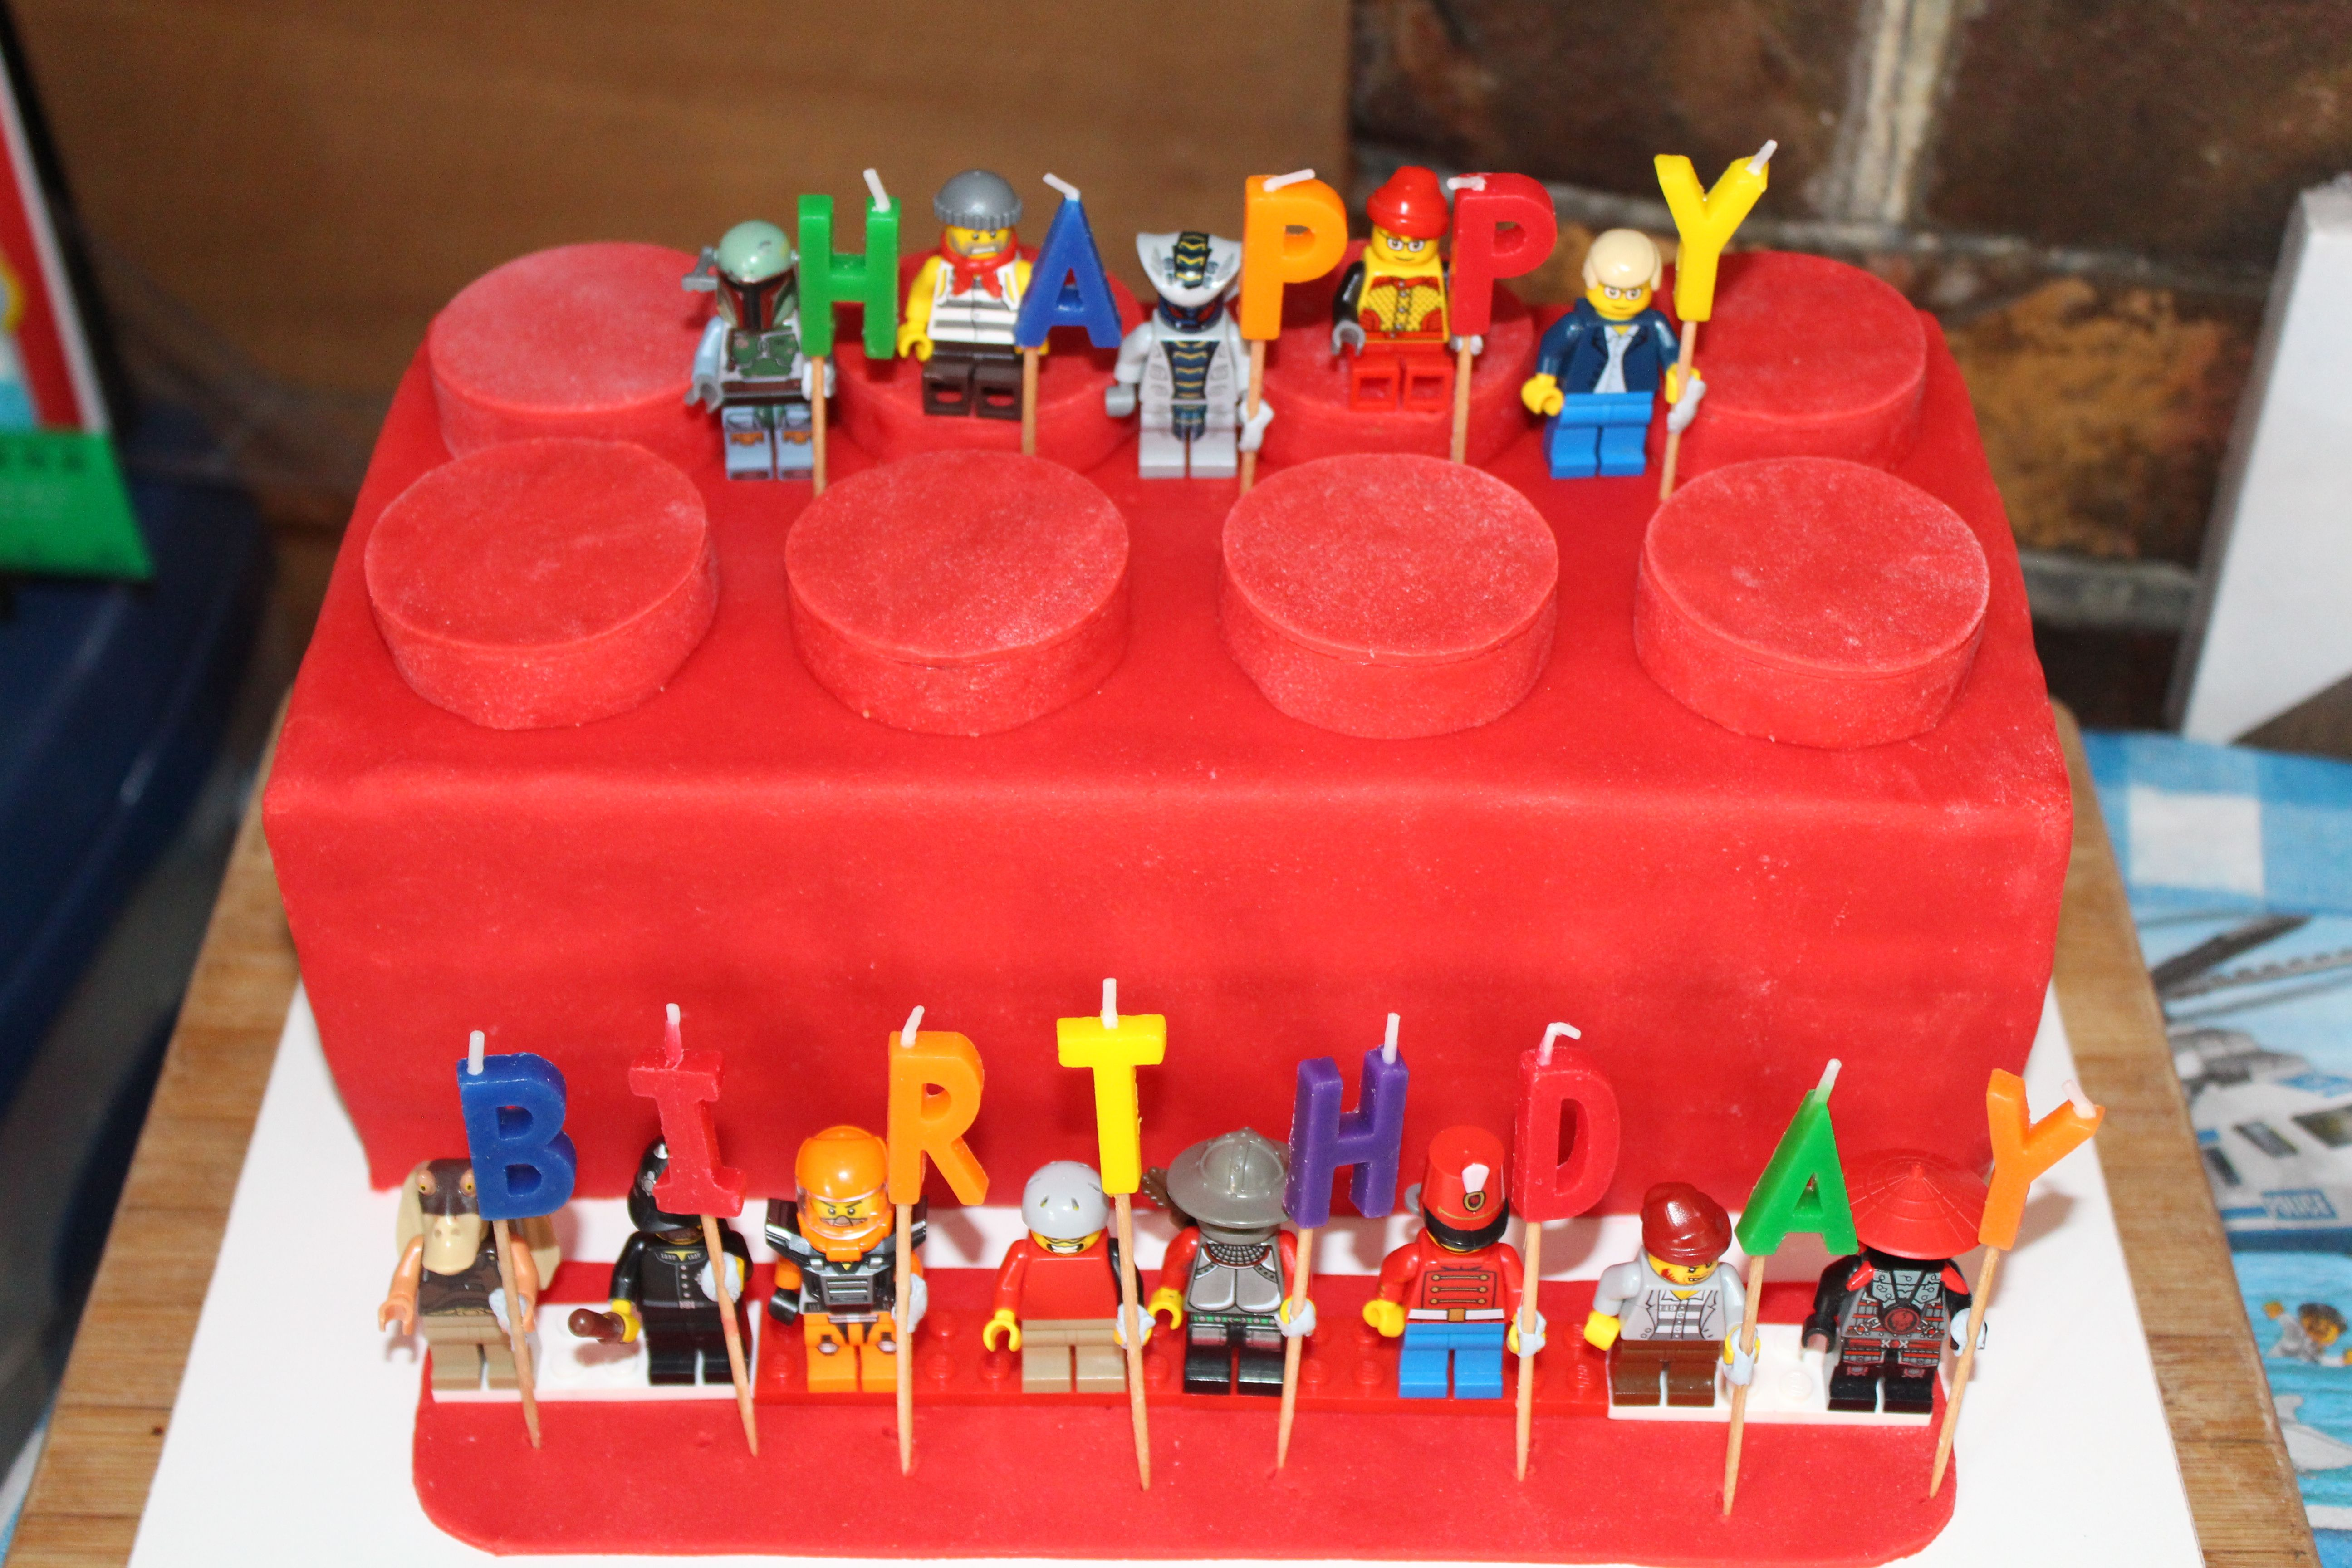 Lego Brick Cake Finished Complete With Mini Figures Holding Happy Birthday Candles